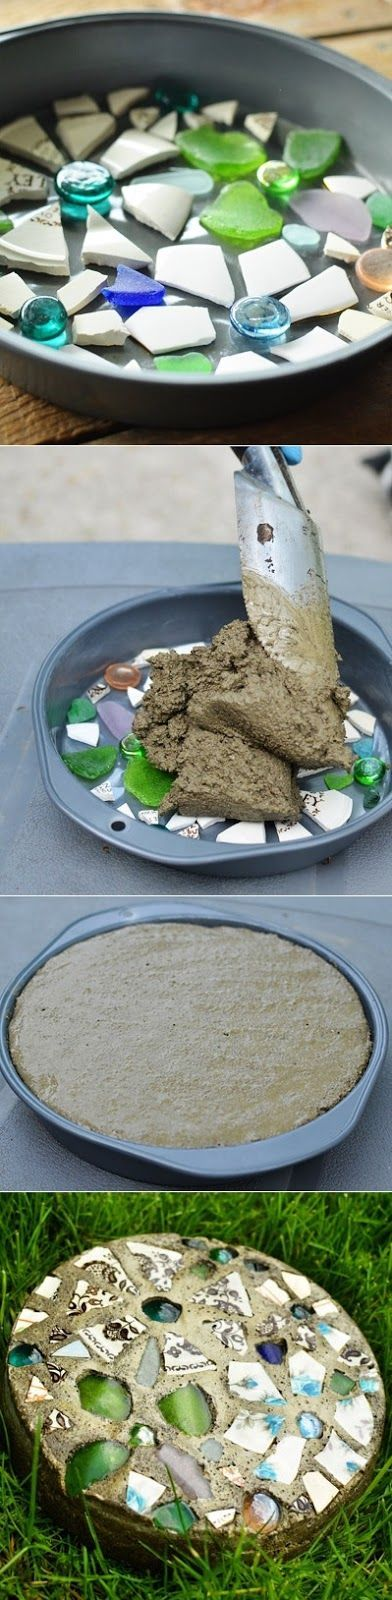 How to Make Garden Stepping Stones..perfect for wedding stones for the bridesmaids to stand on!